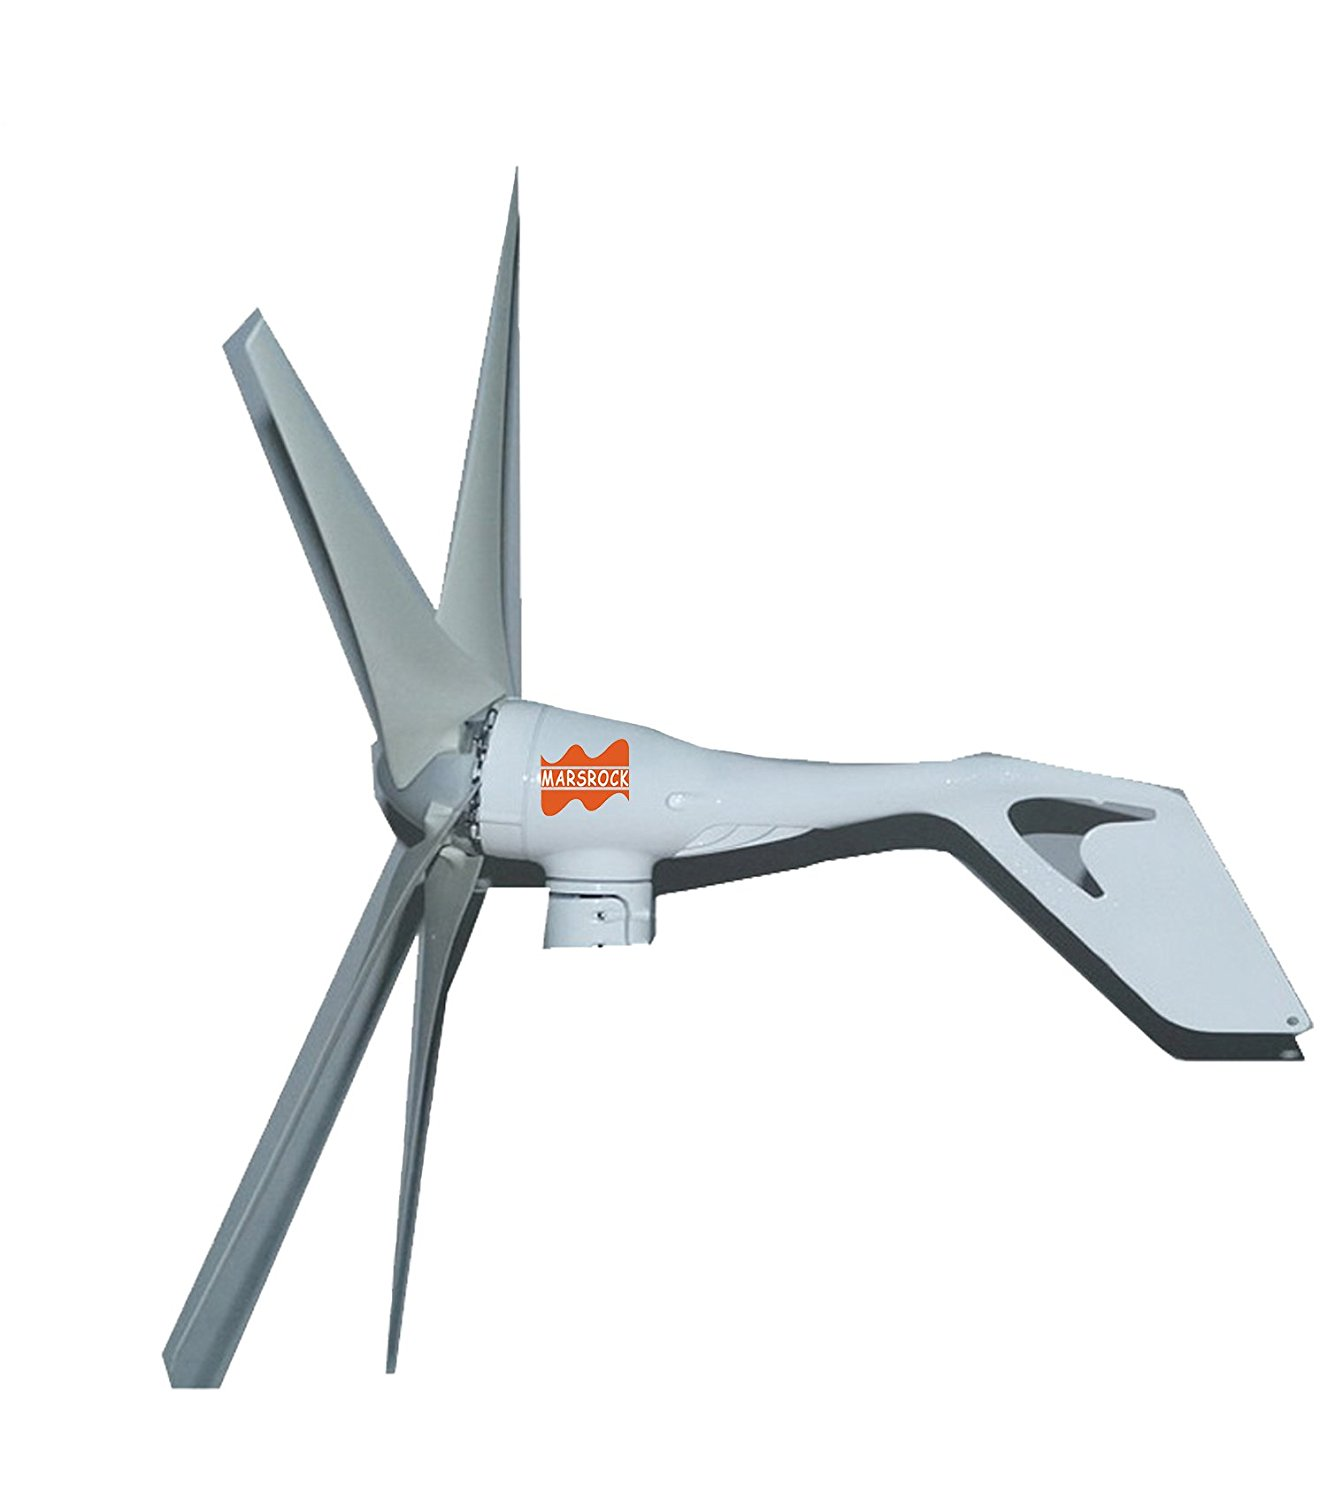 MarsRock Mini Wind Turbine DC 12V or 24V 3 Blades 400W 300W Wind Turbine Generator with built-in Rectifier module , 2M/S Start Wind Speed (100W)